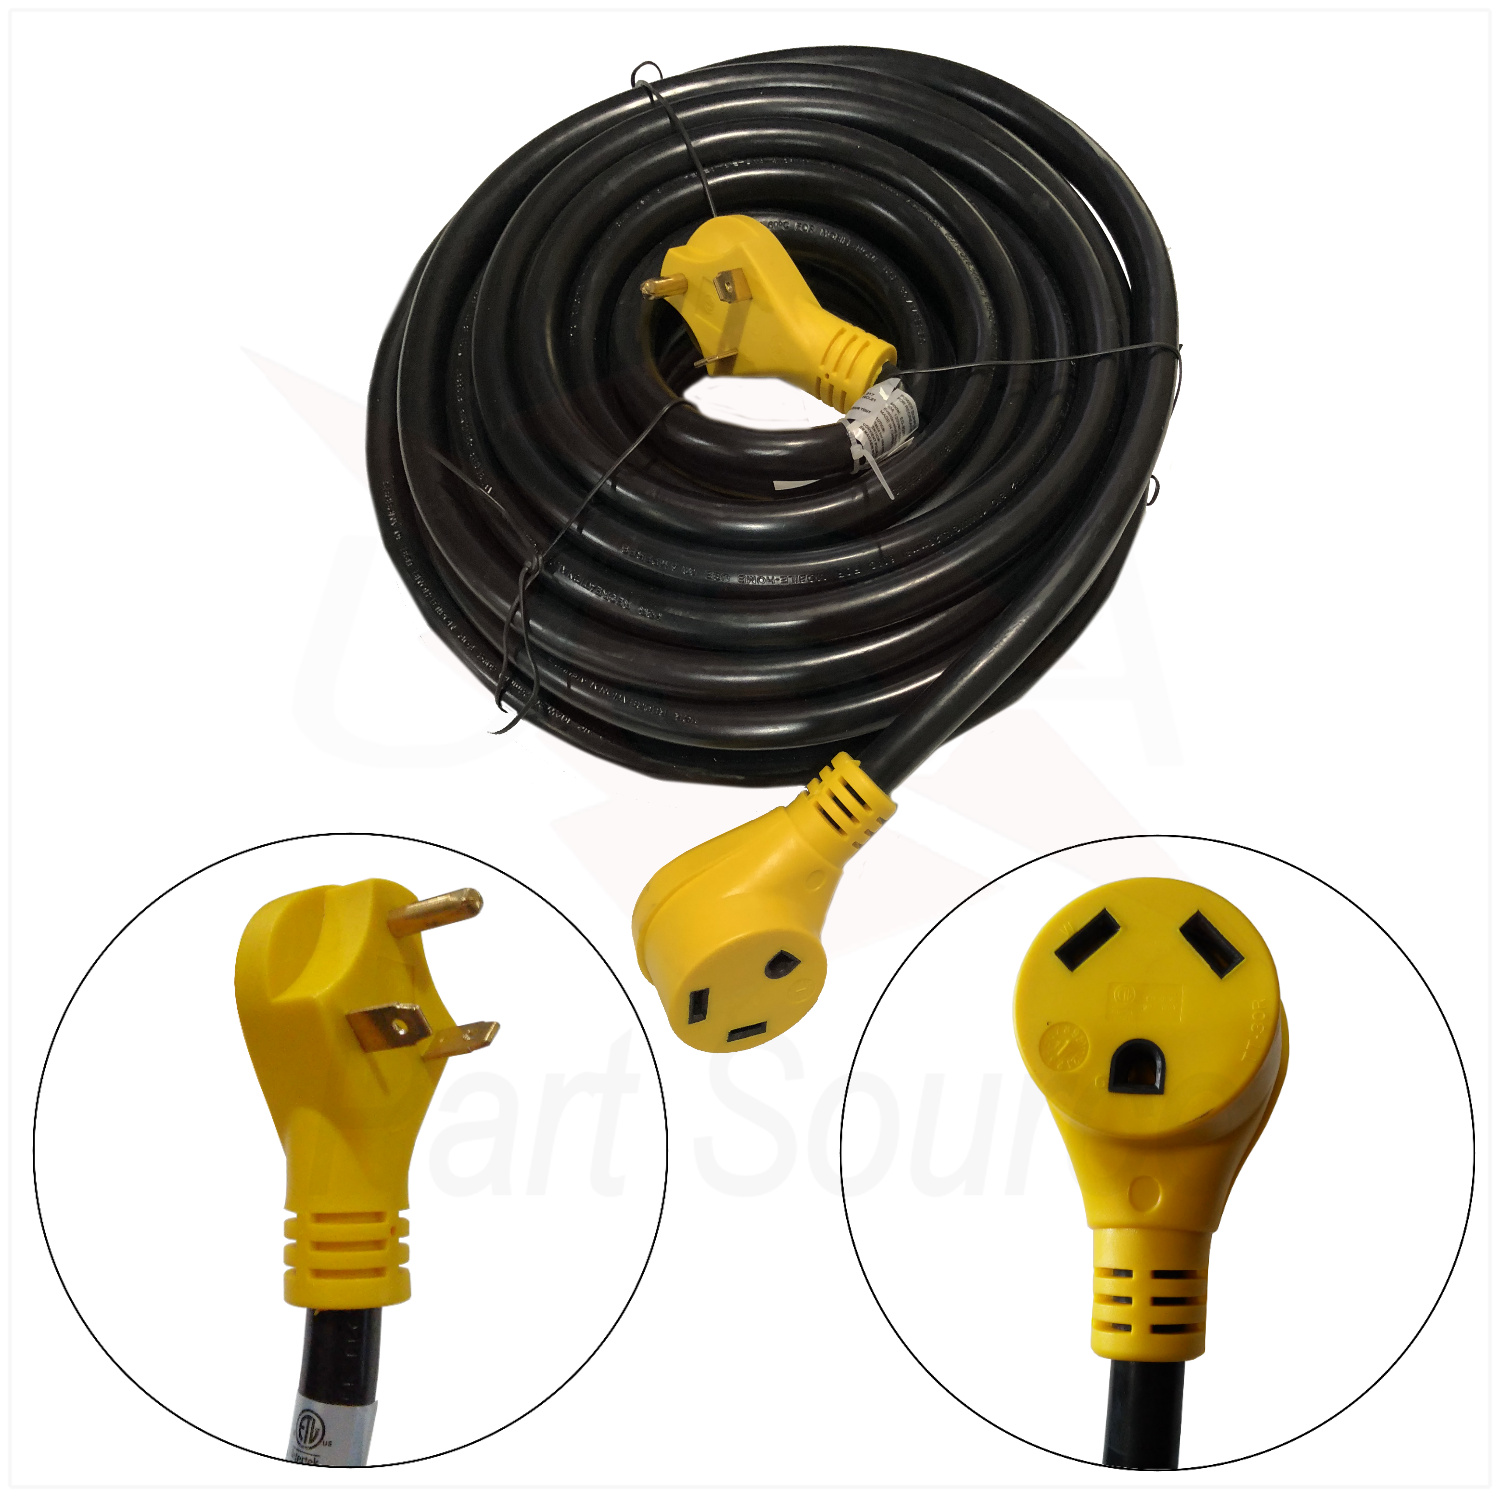 25 Foot RV Extension Cord 30 Amp Power Supply Cable for Trailer Camper Motorhome